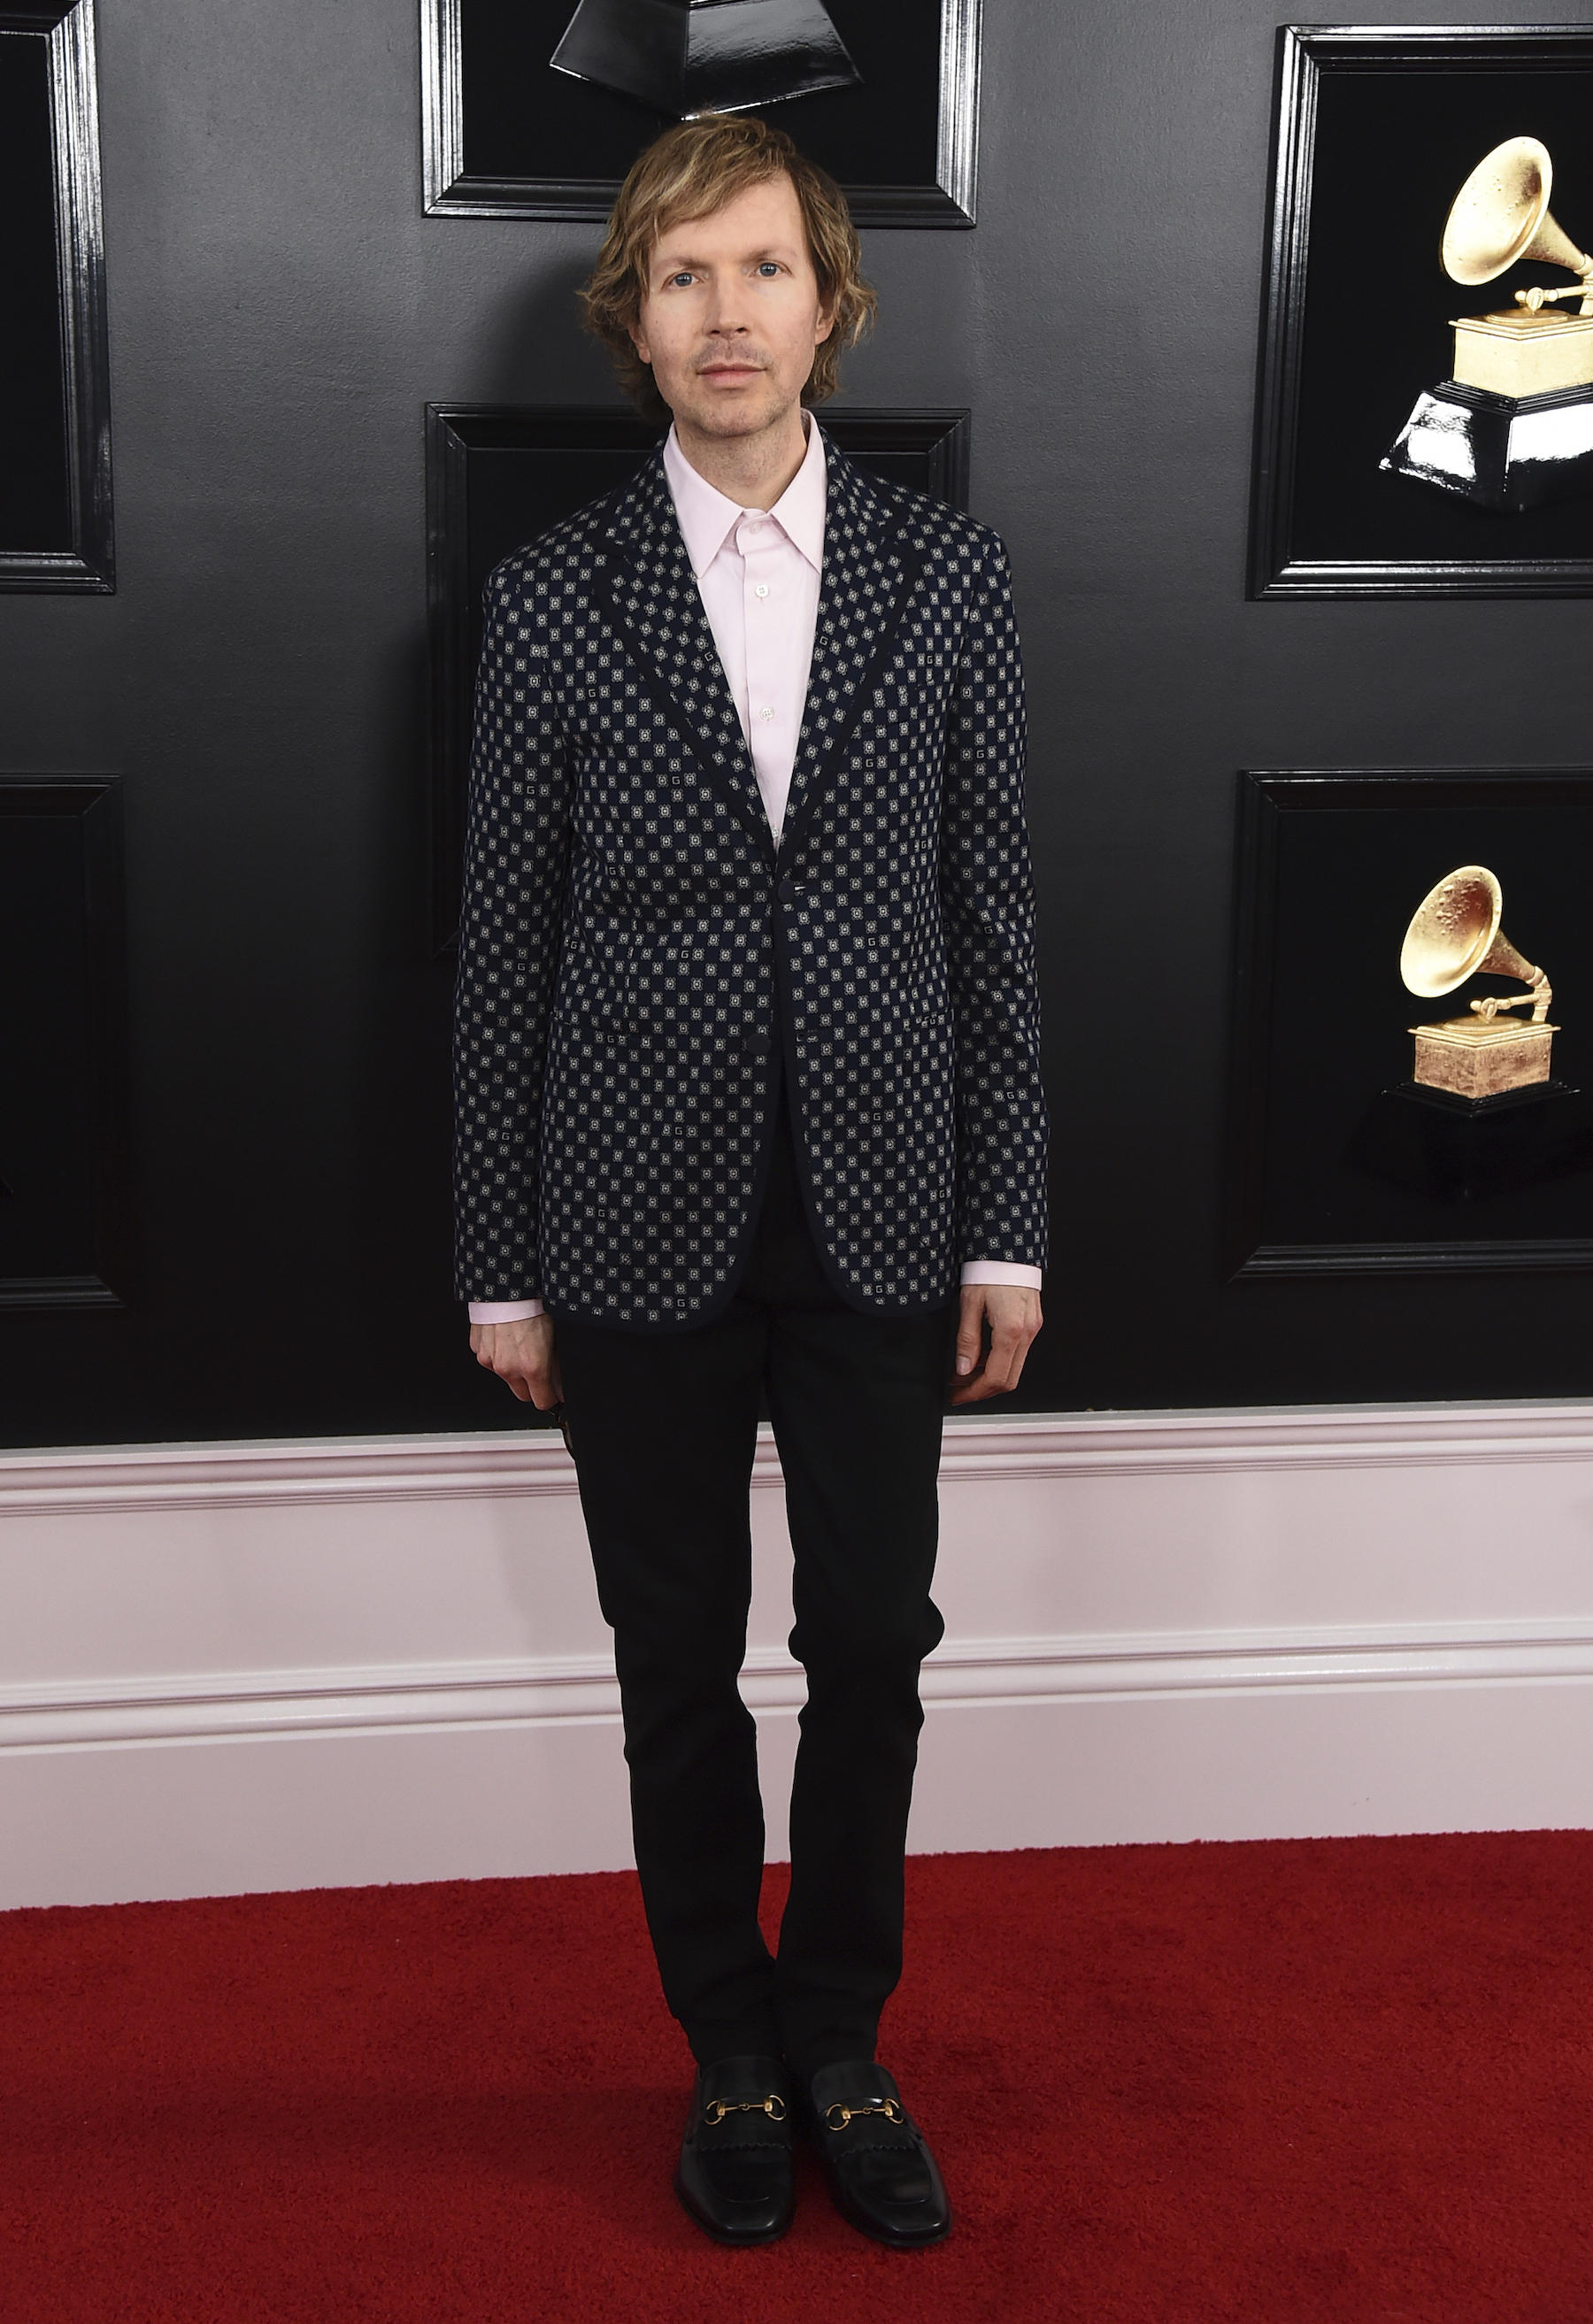 "<div class=""meta image-caption""><div class=""origin-logo origin-image ap""><span>AP</span></div><span class=""caption-text"">Beck arrives at the 61st annual Grammy Awards at the Staples Center on Sunday, Feb. 10, 2019, in Los Angeles. (Jordan Strauss/Invision/AP)</span></div>"